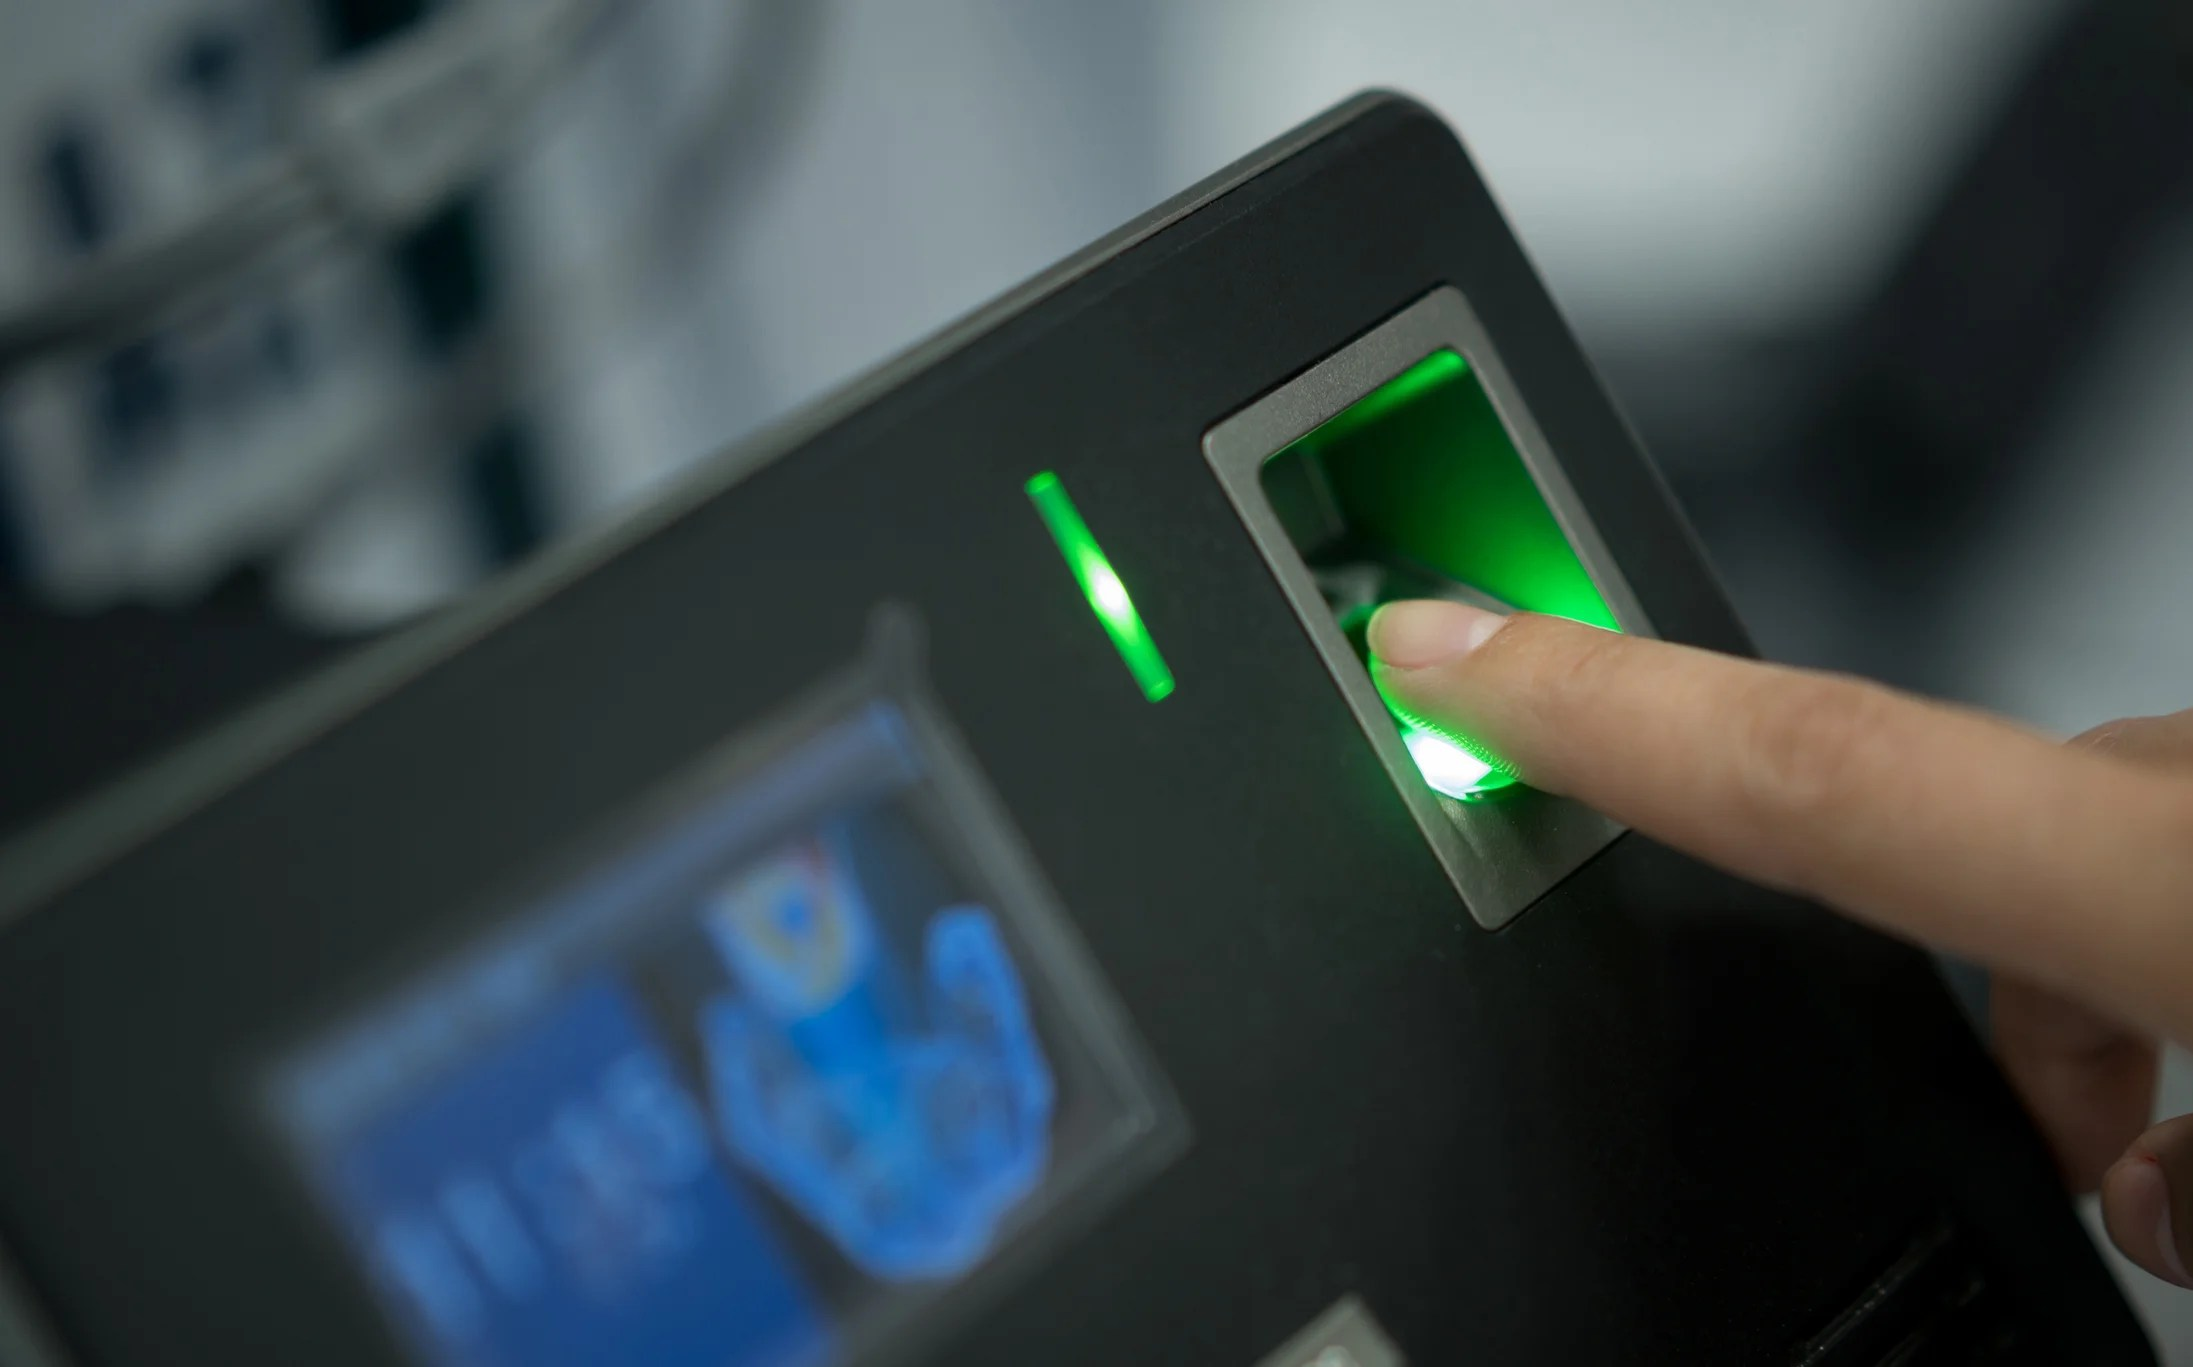 tsa testing fingerprint scans to get you through the airport